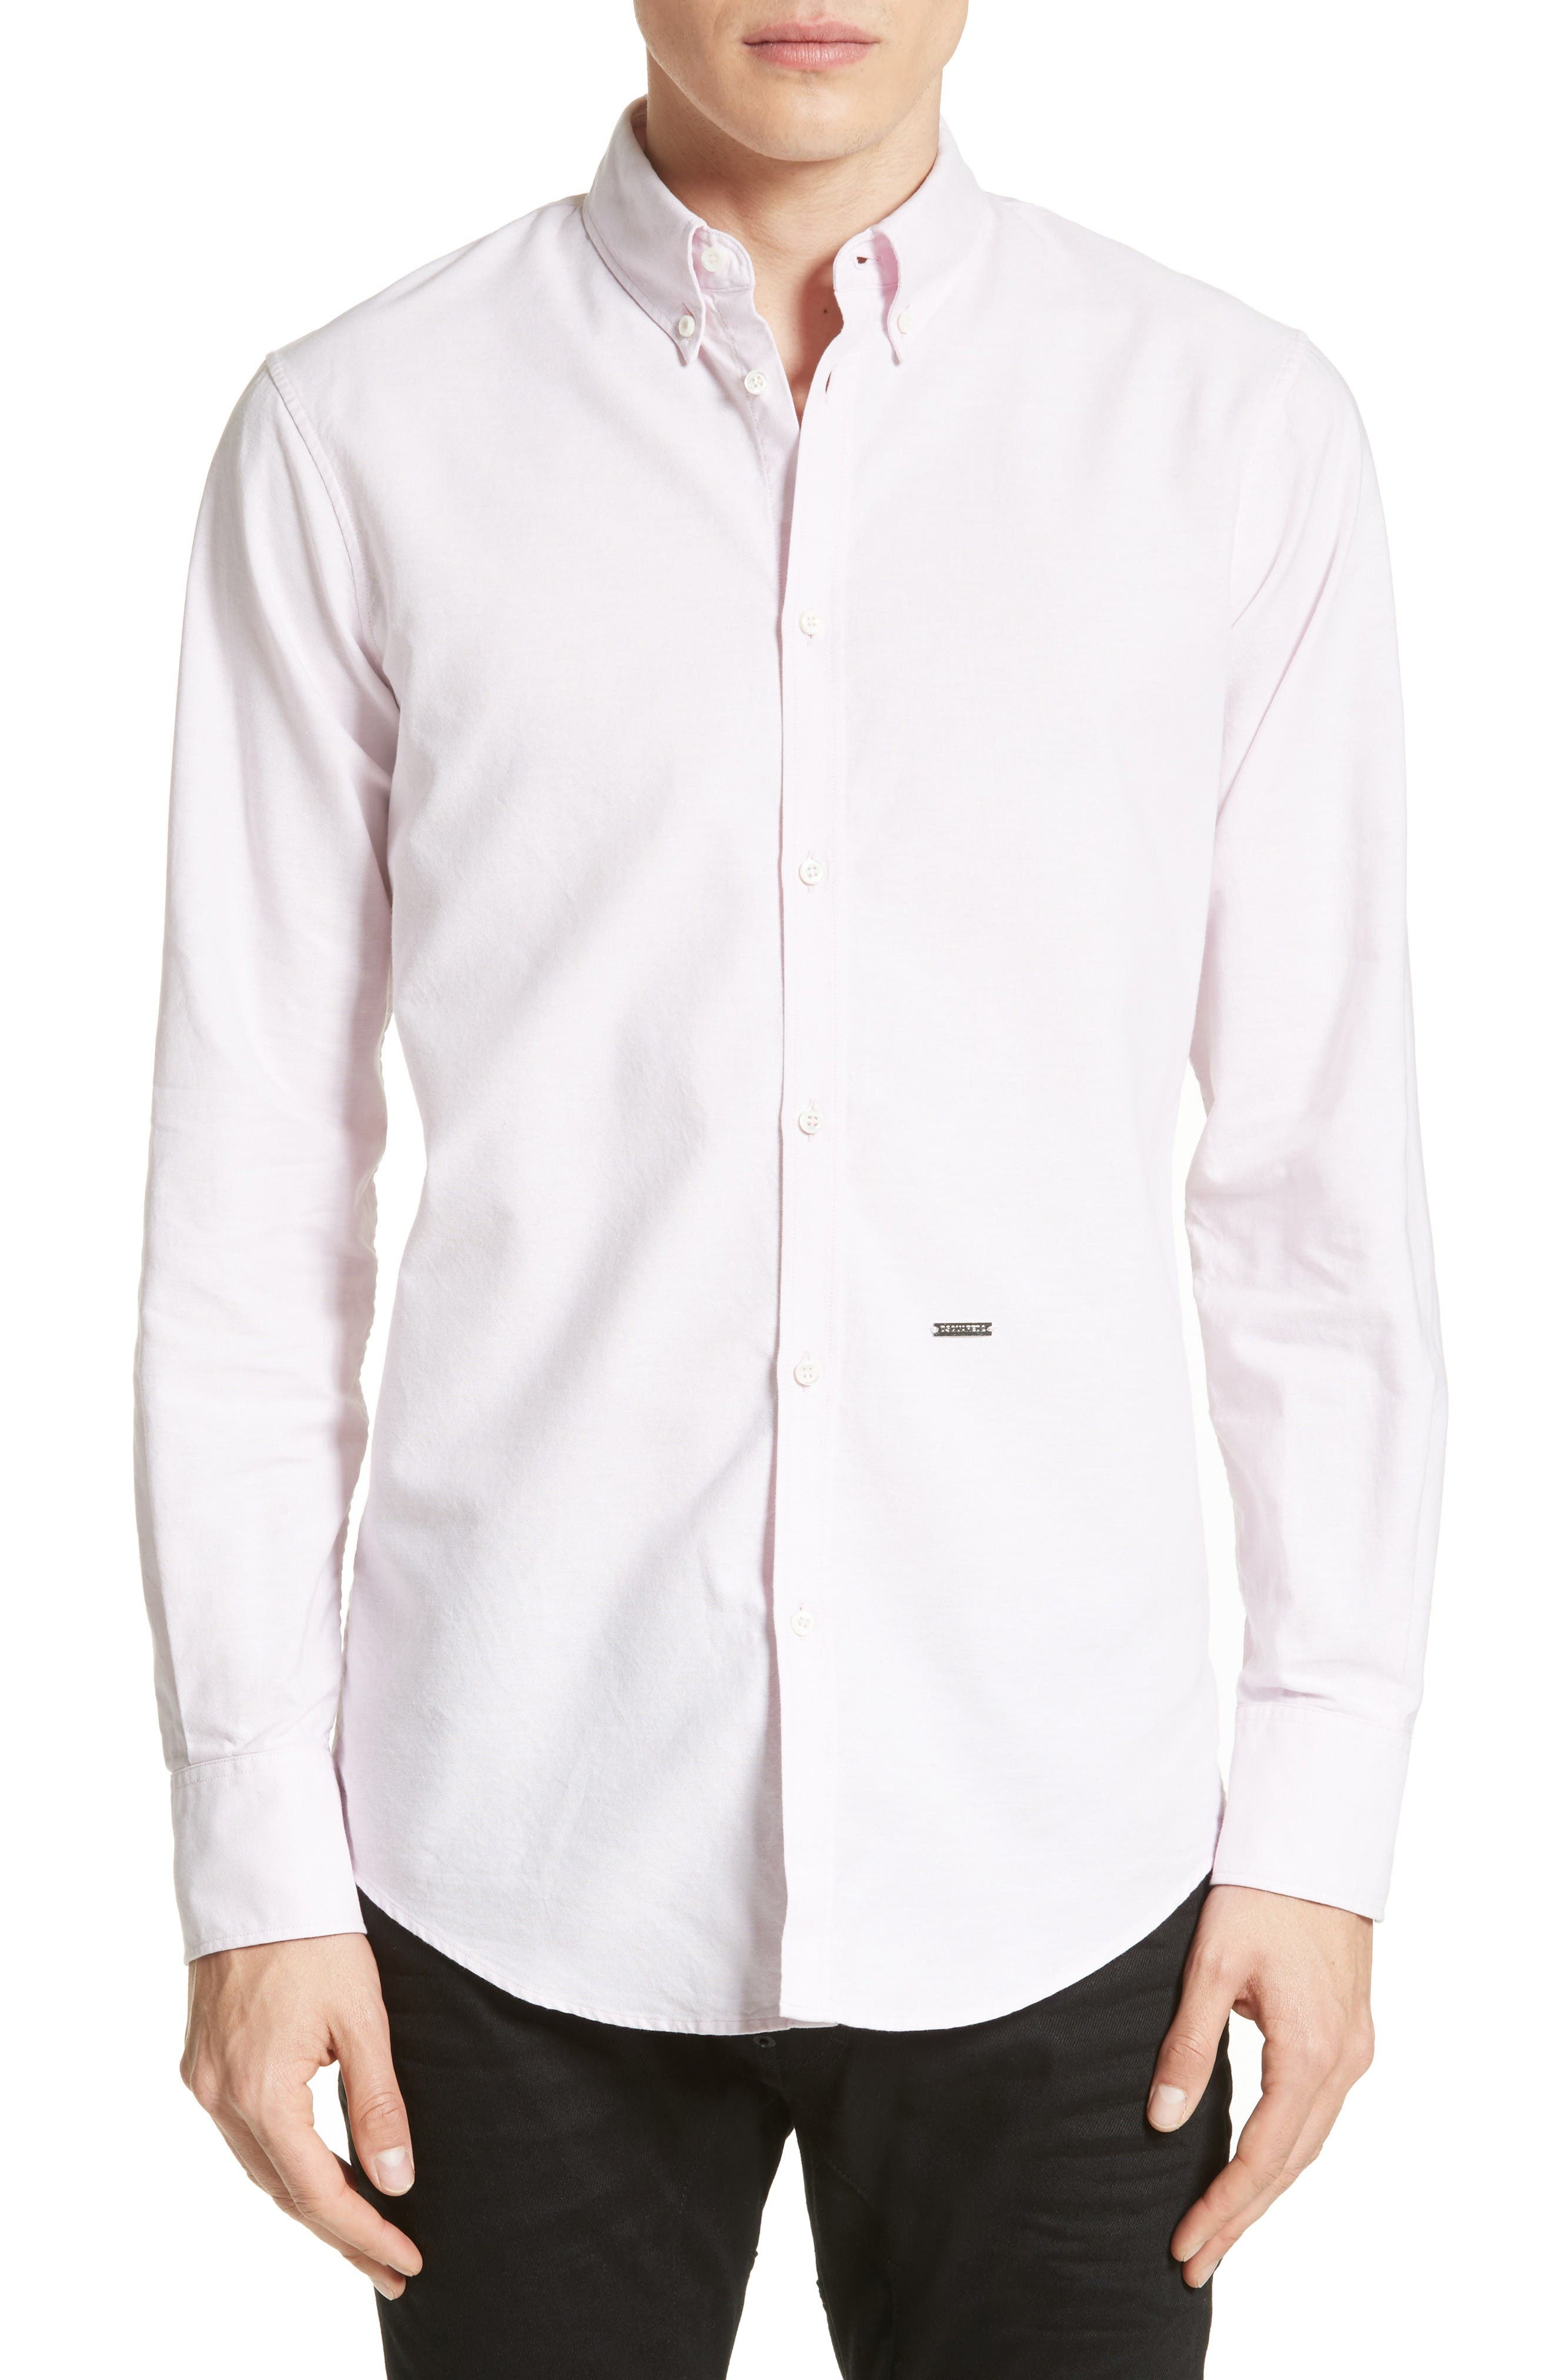 Alternate Image 1 Selected - Dsquared2 Extra Trim Fit Oxford Sport Shirt